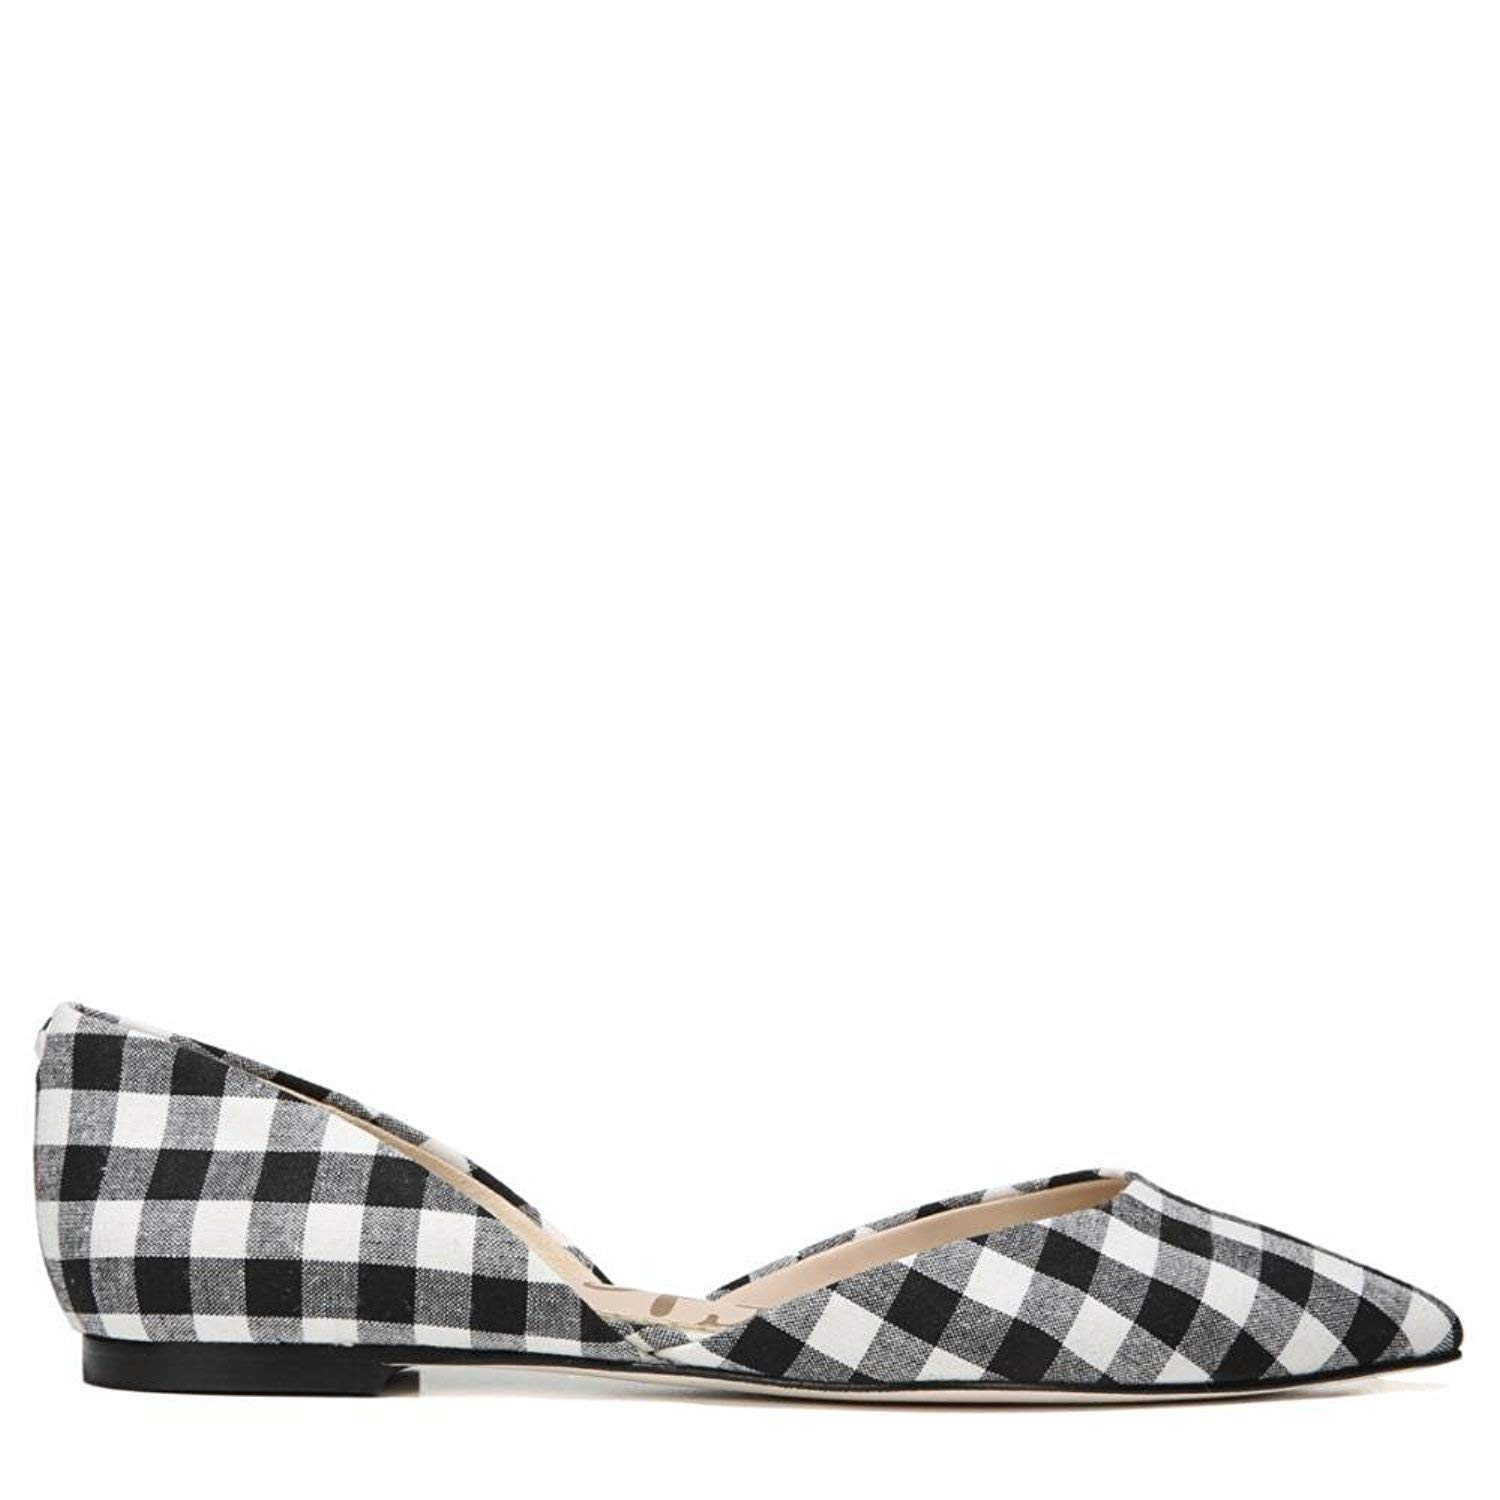 Black White Large Gingham Weave Sam Edelman Women's